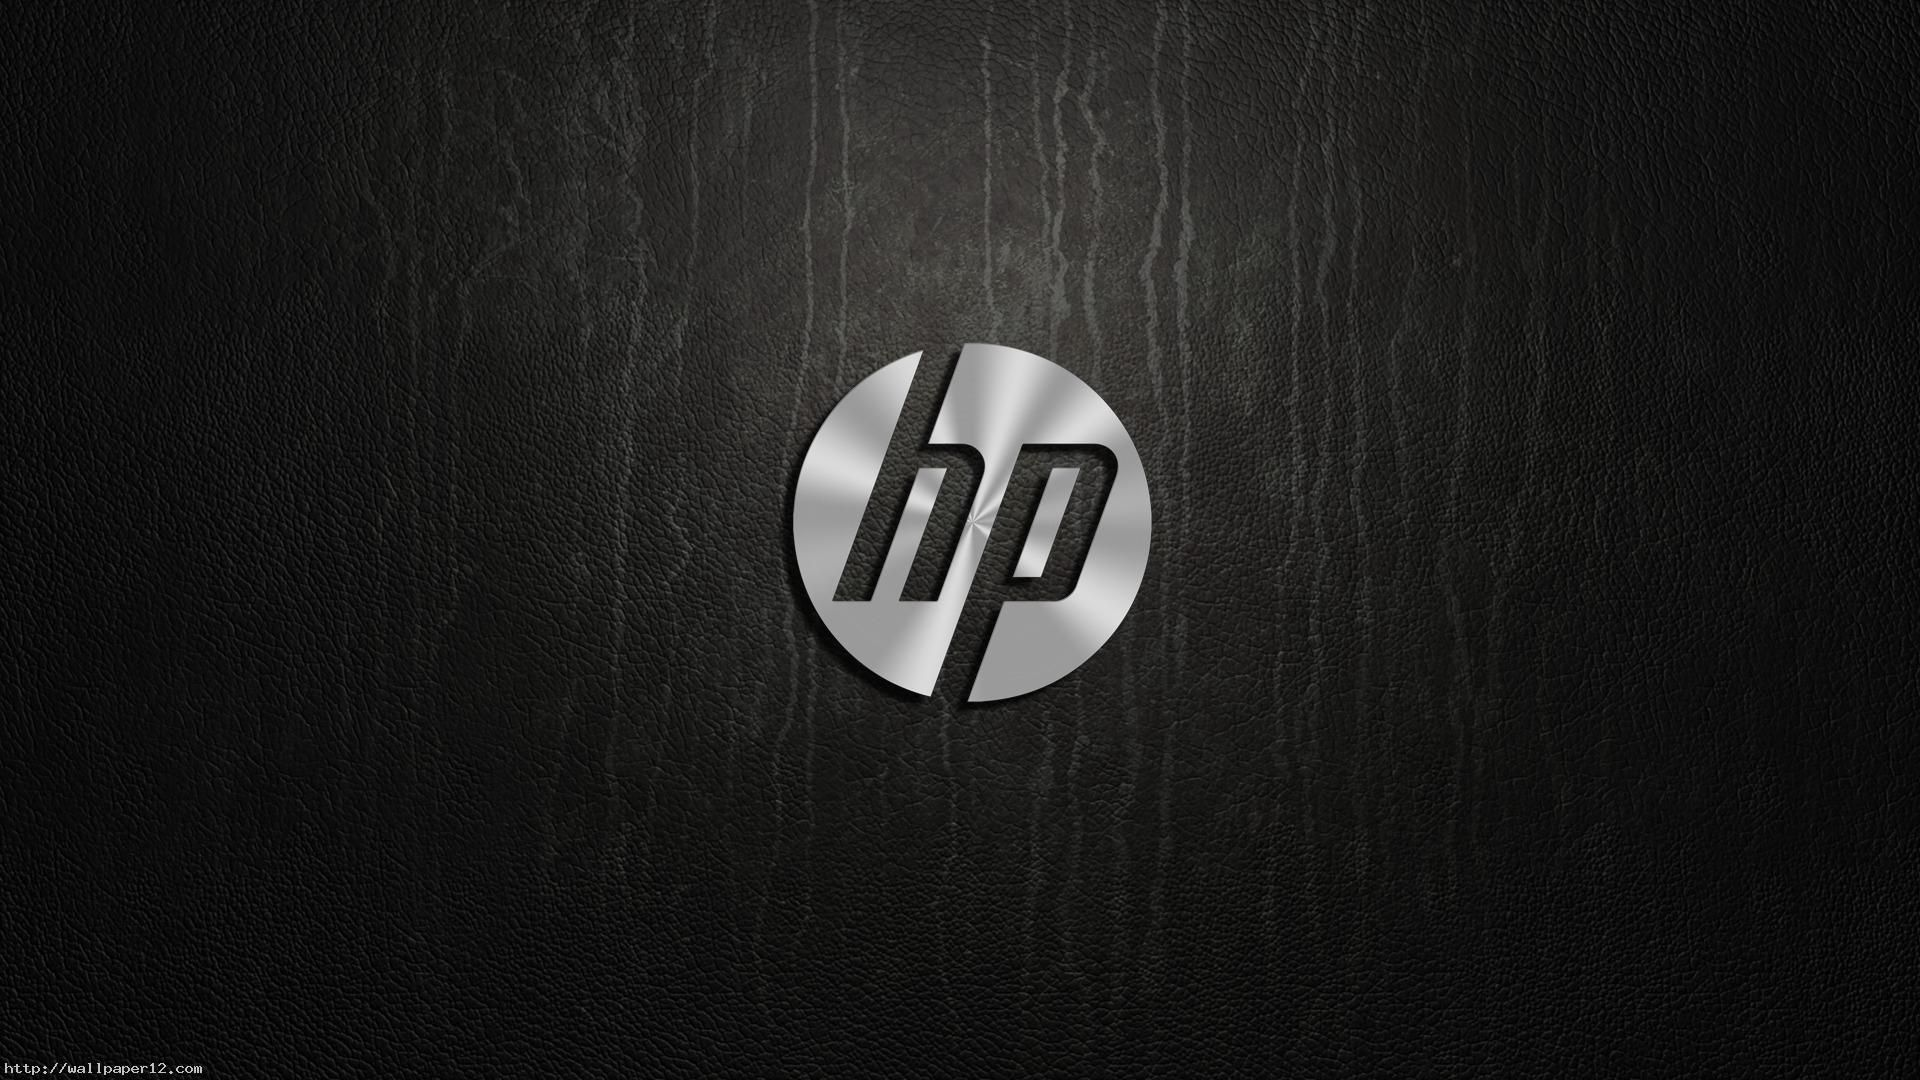 hp wallpaper k wallpapers kid 1920×1080 hp wallpapers 1920×1080 (52